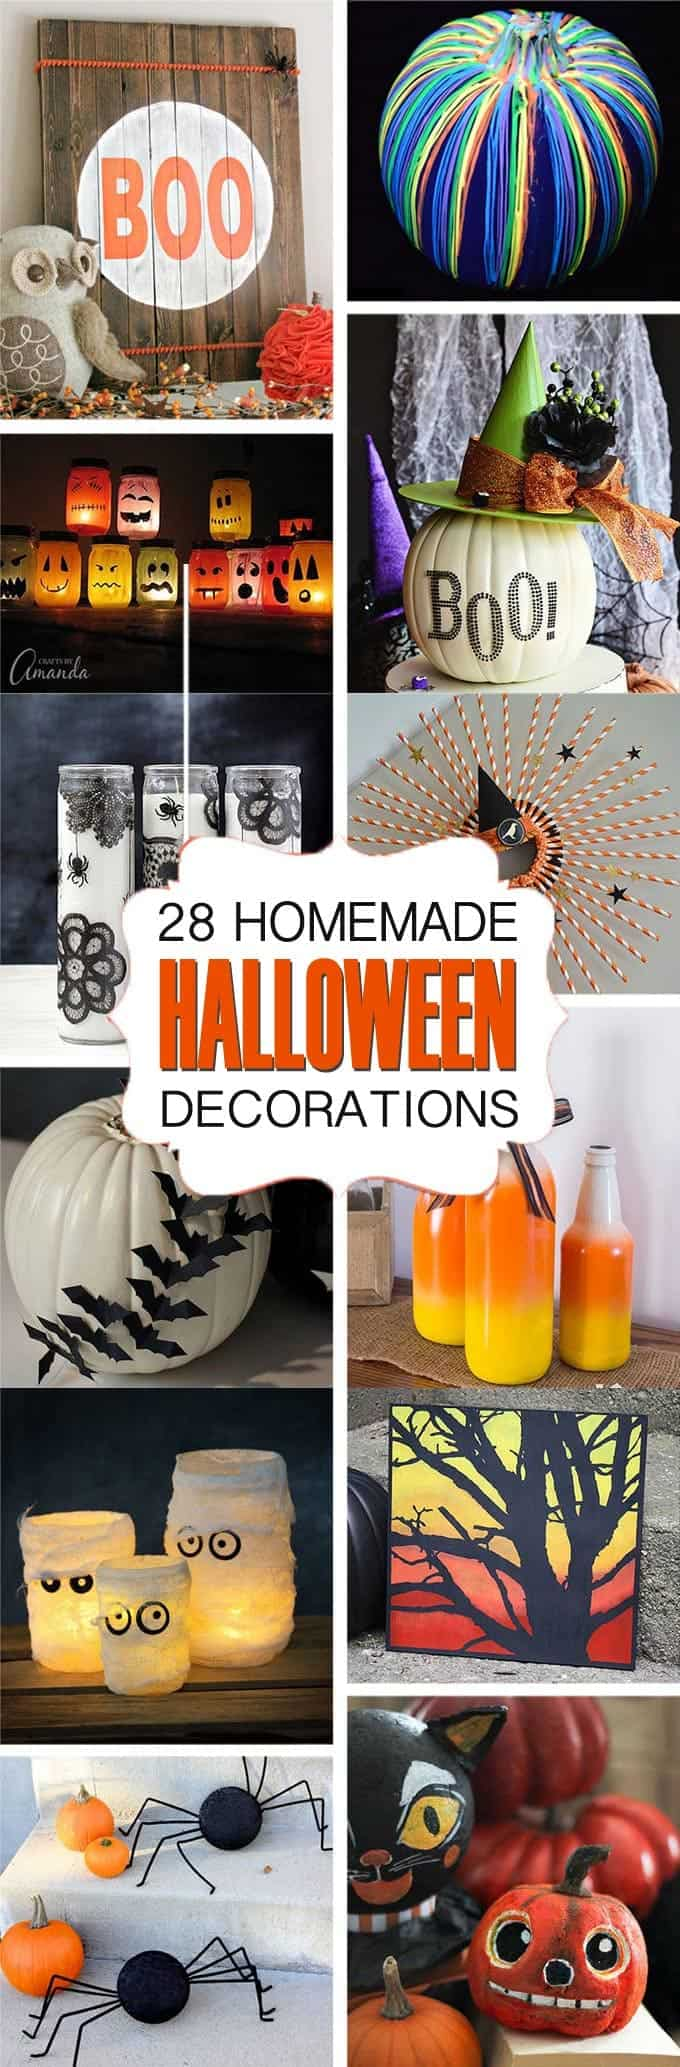 Crafty Halloween Decoration Ideas